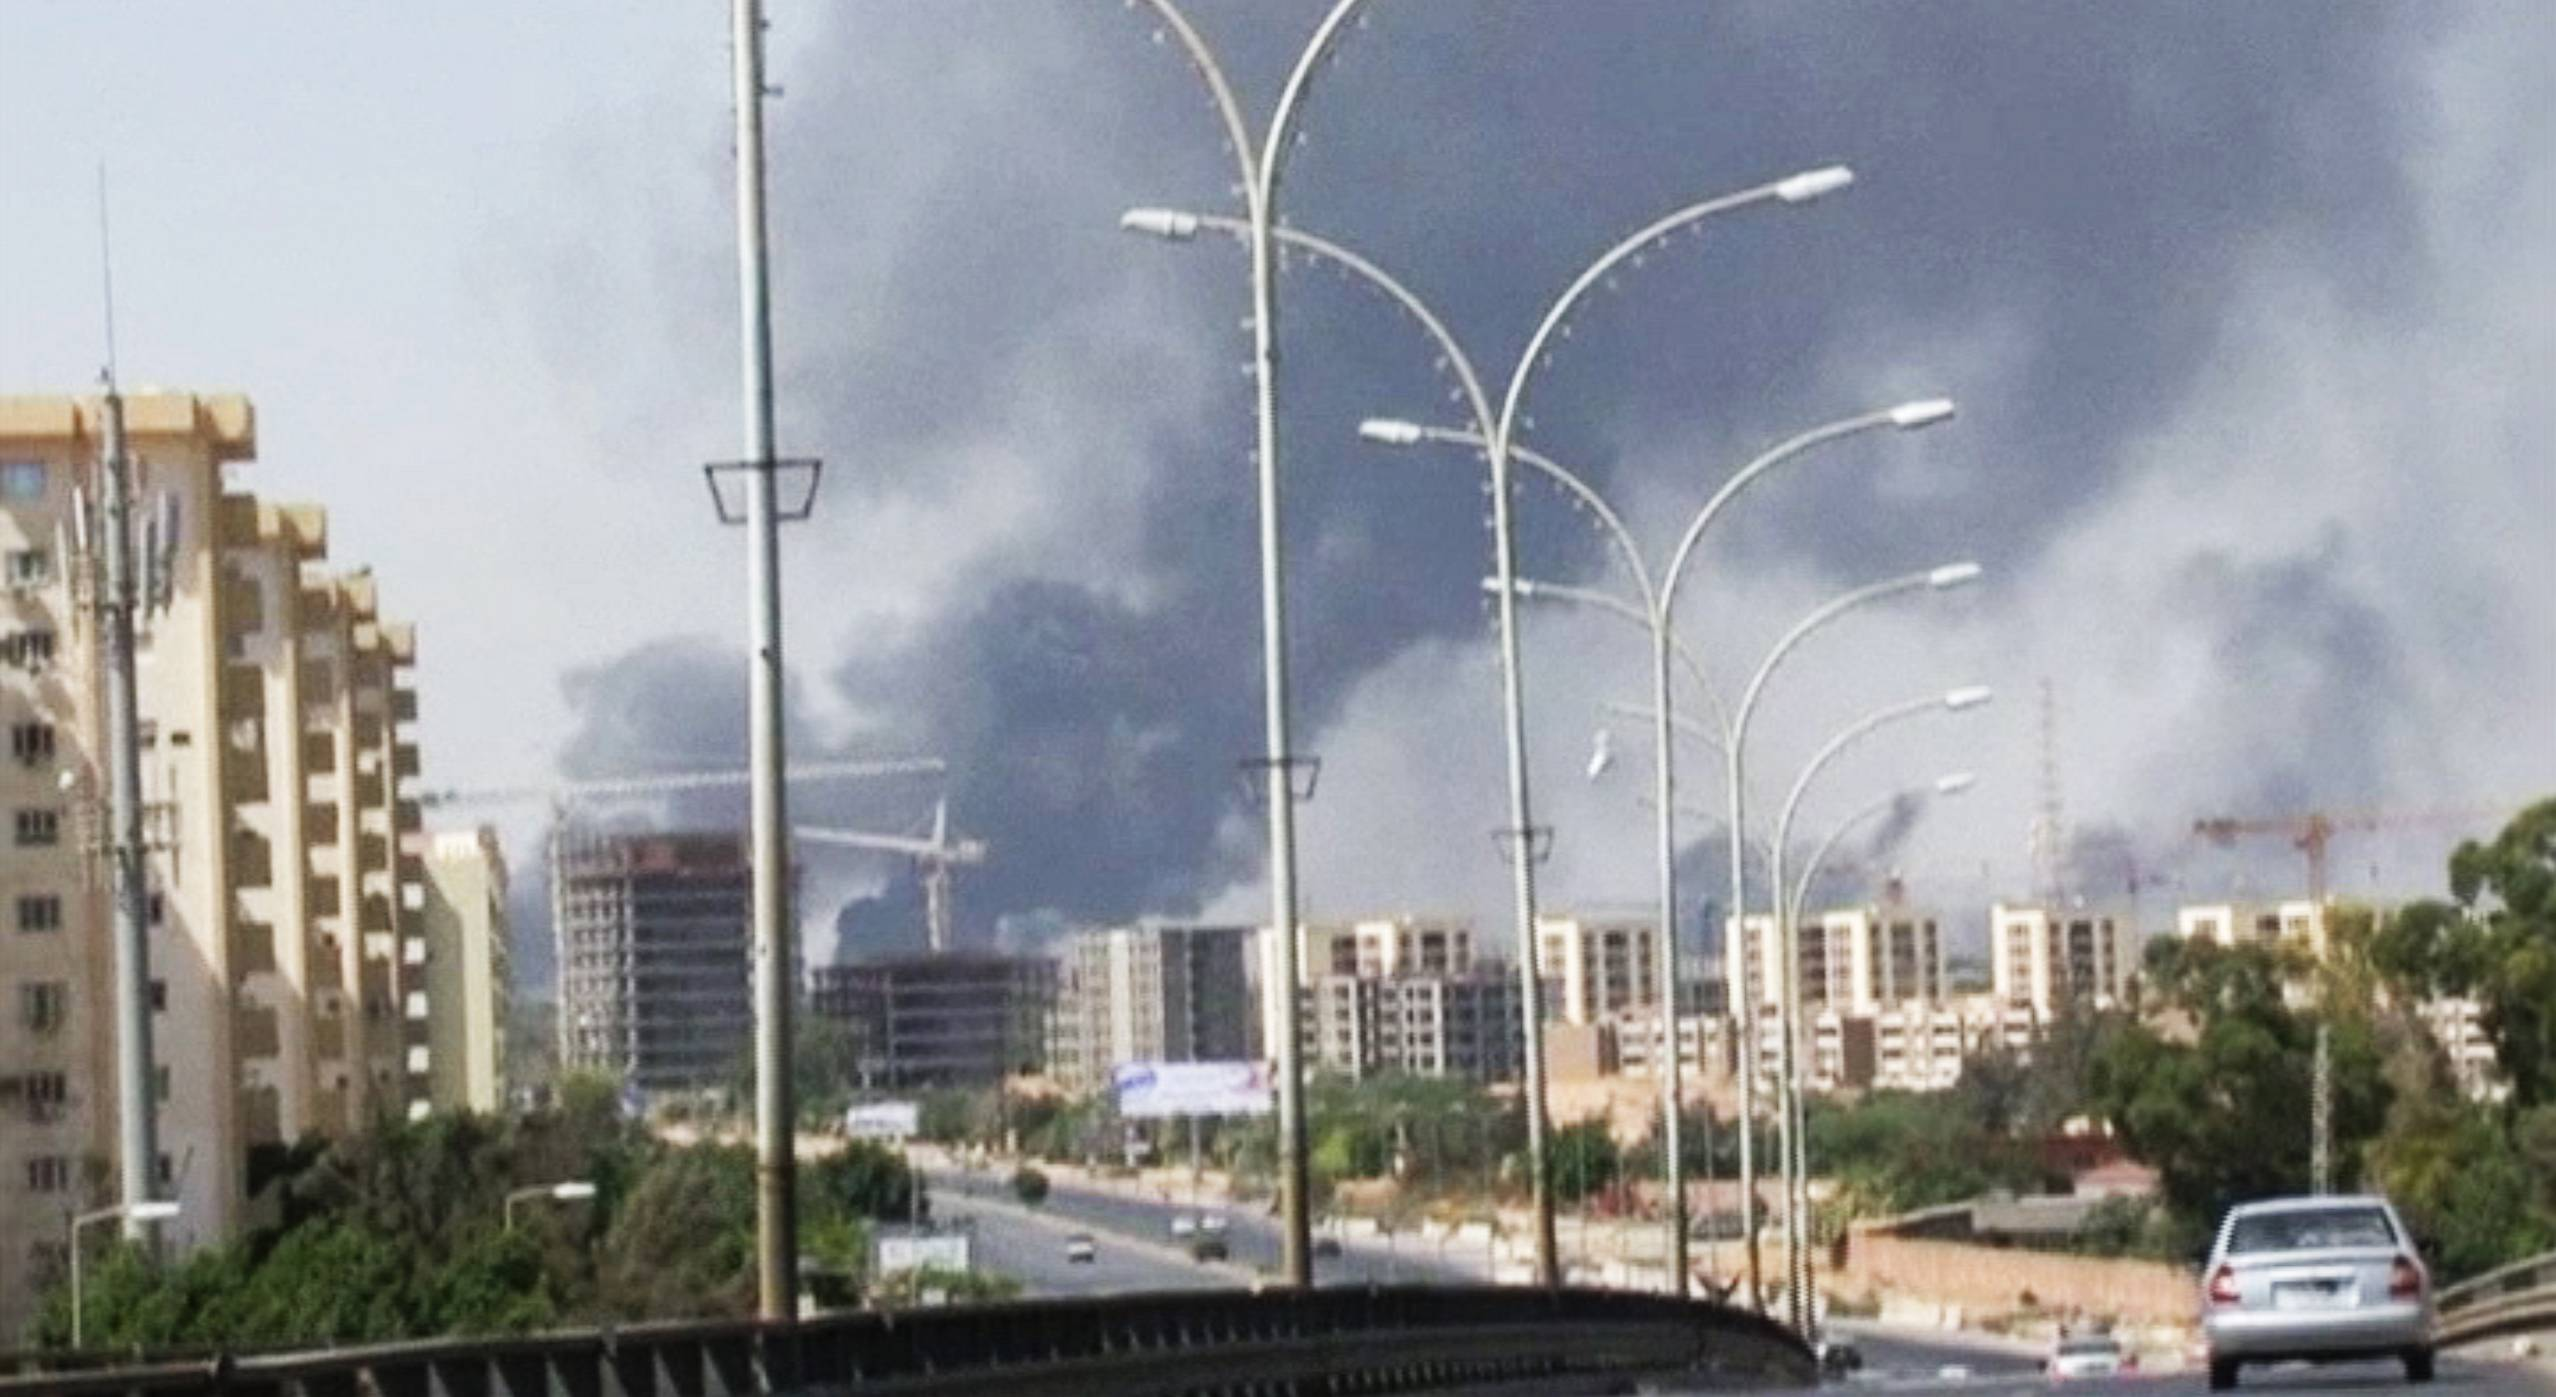 In this Sunday, July 13, 2014 file image made from video by The Associated Press, smoke rises from the direction of Tripoli airport in Tripoli, Libya. The United States shut down its embassy in Libya on Saturday and evacuated its diplomats to neighboring Tunisia under U.S. military escort amid a significant deterioration in security in Tripoli as fighting intensified between rival militias, the State Department said.